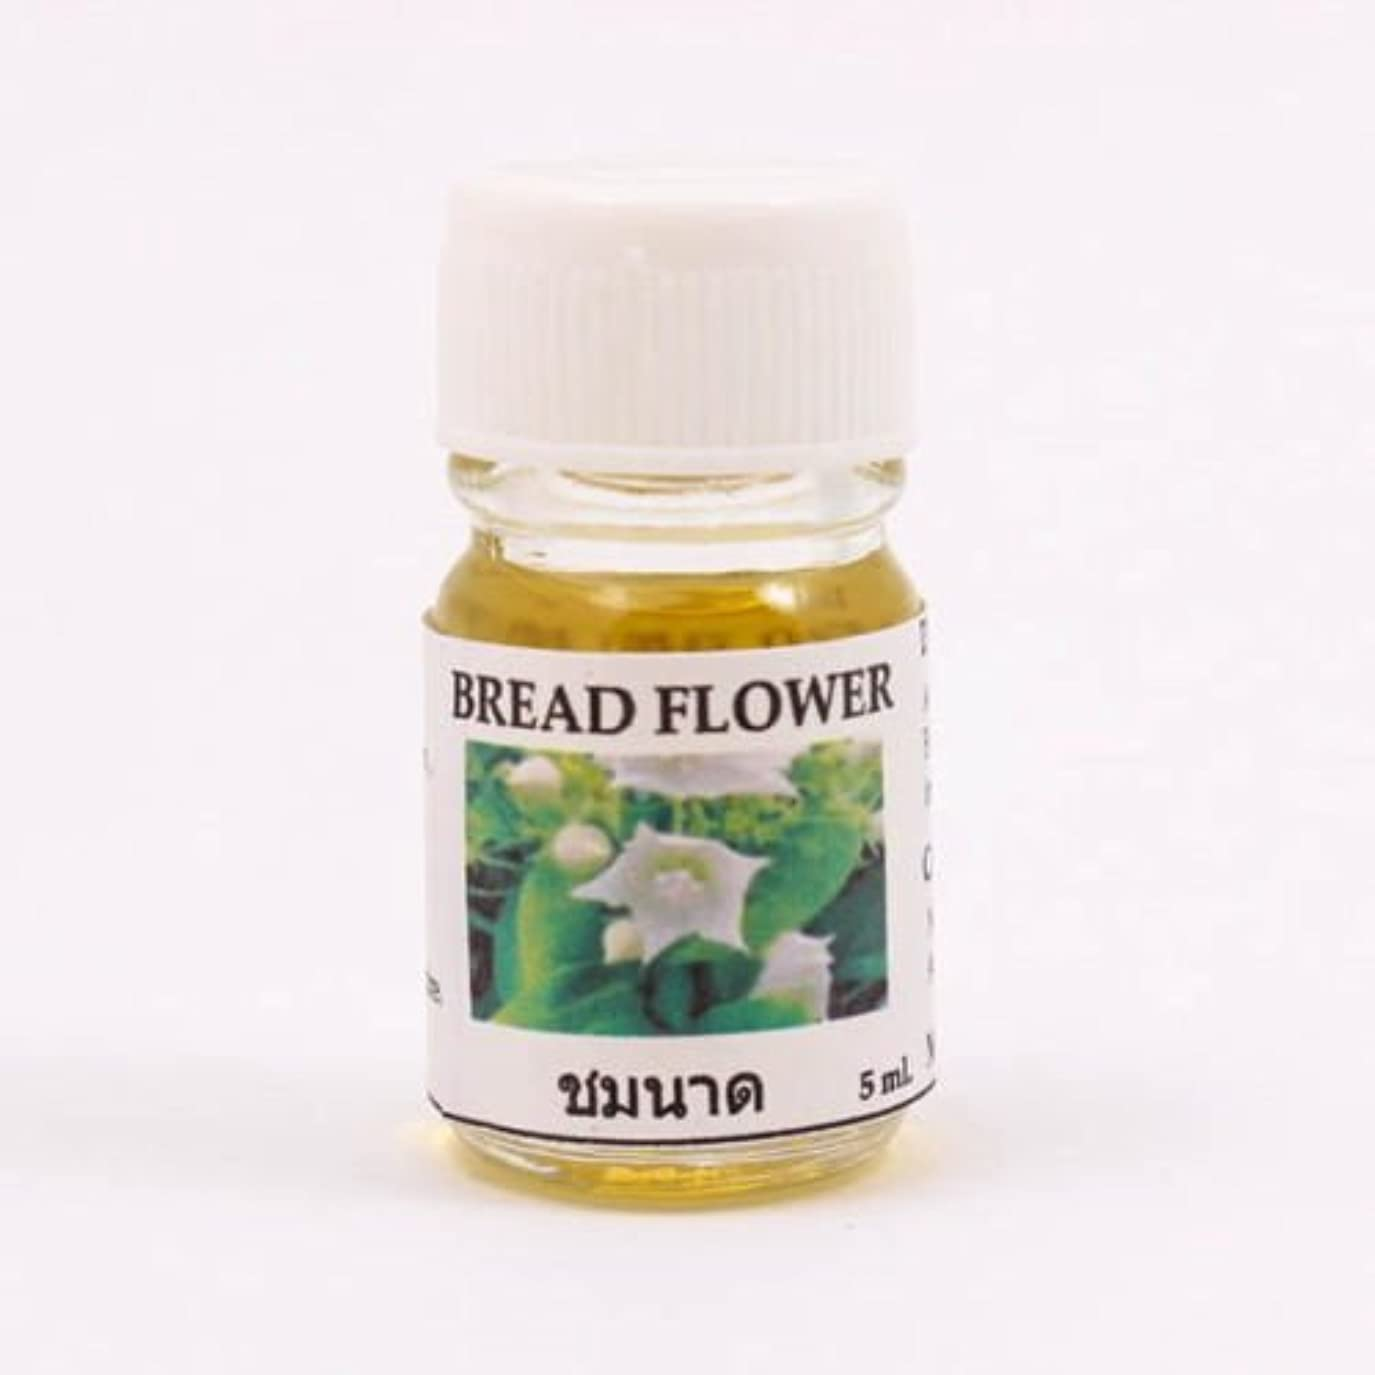 ジャズ防水議論する6X Bread Flower Fragrance Essential Oil 5ML. (cc) Diffuser Burner Therapy